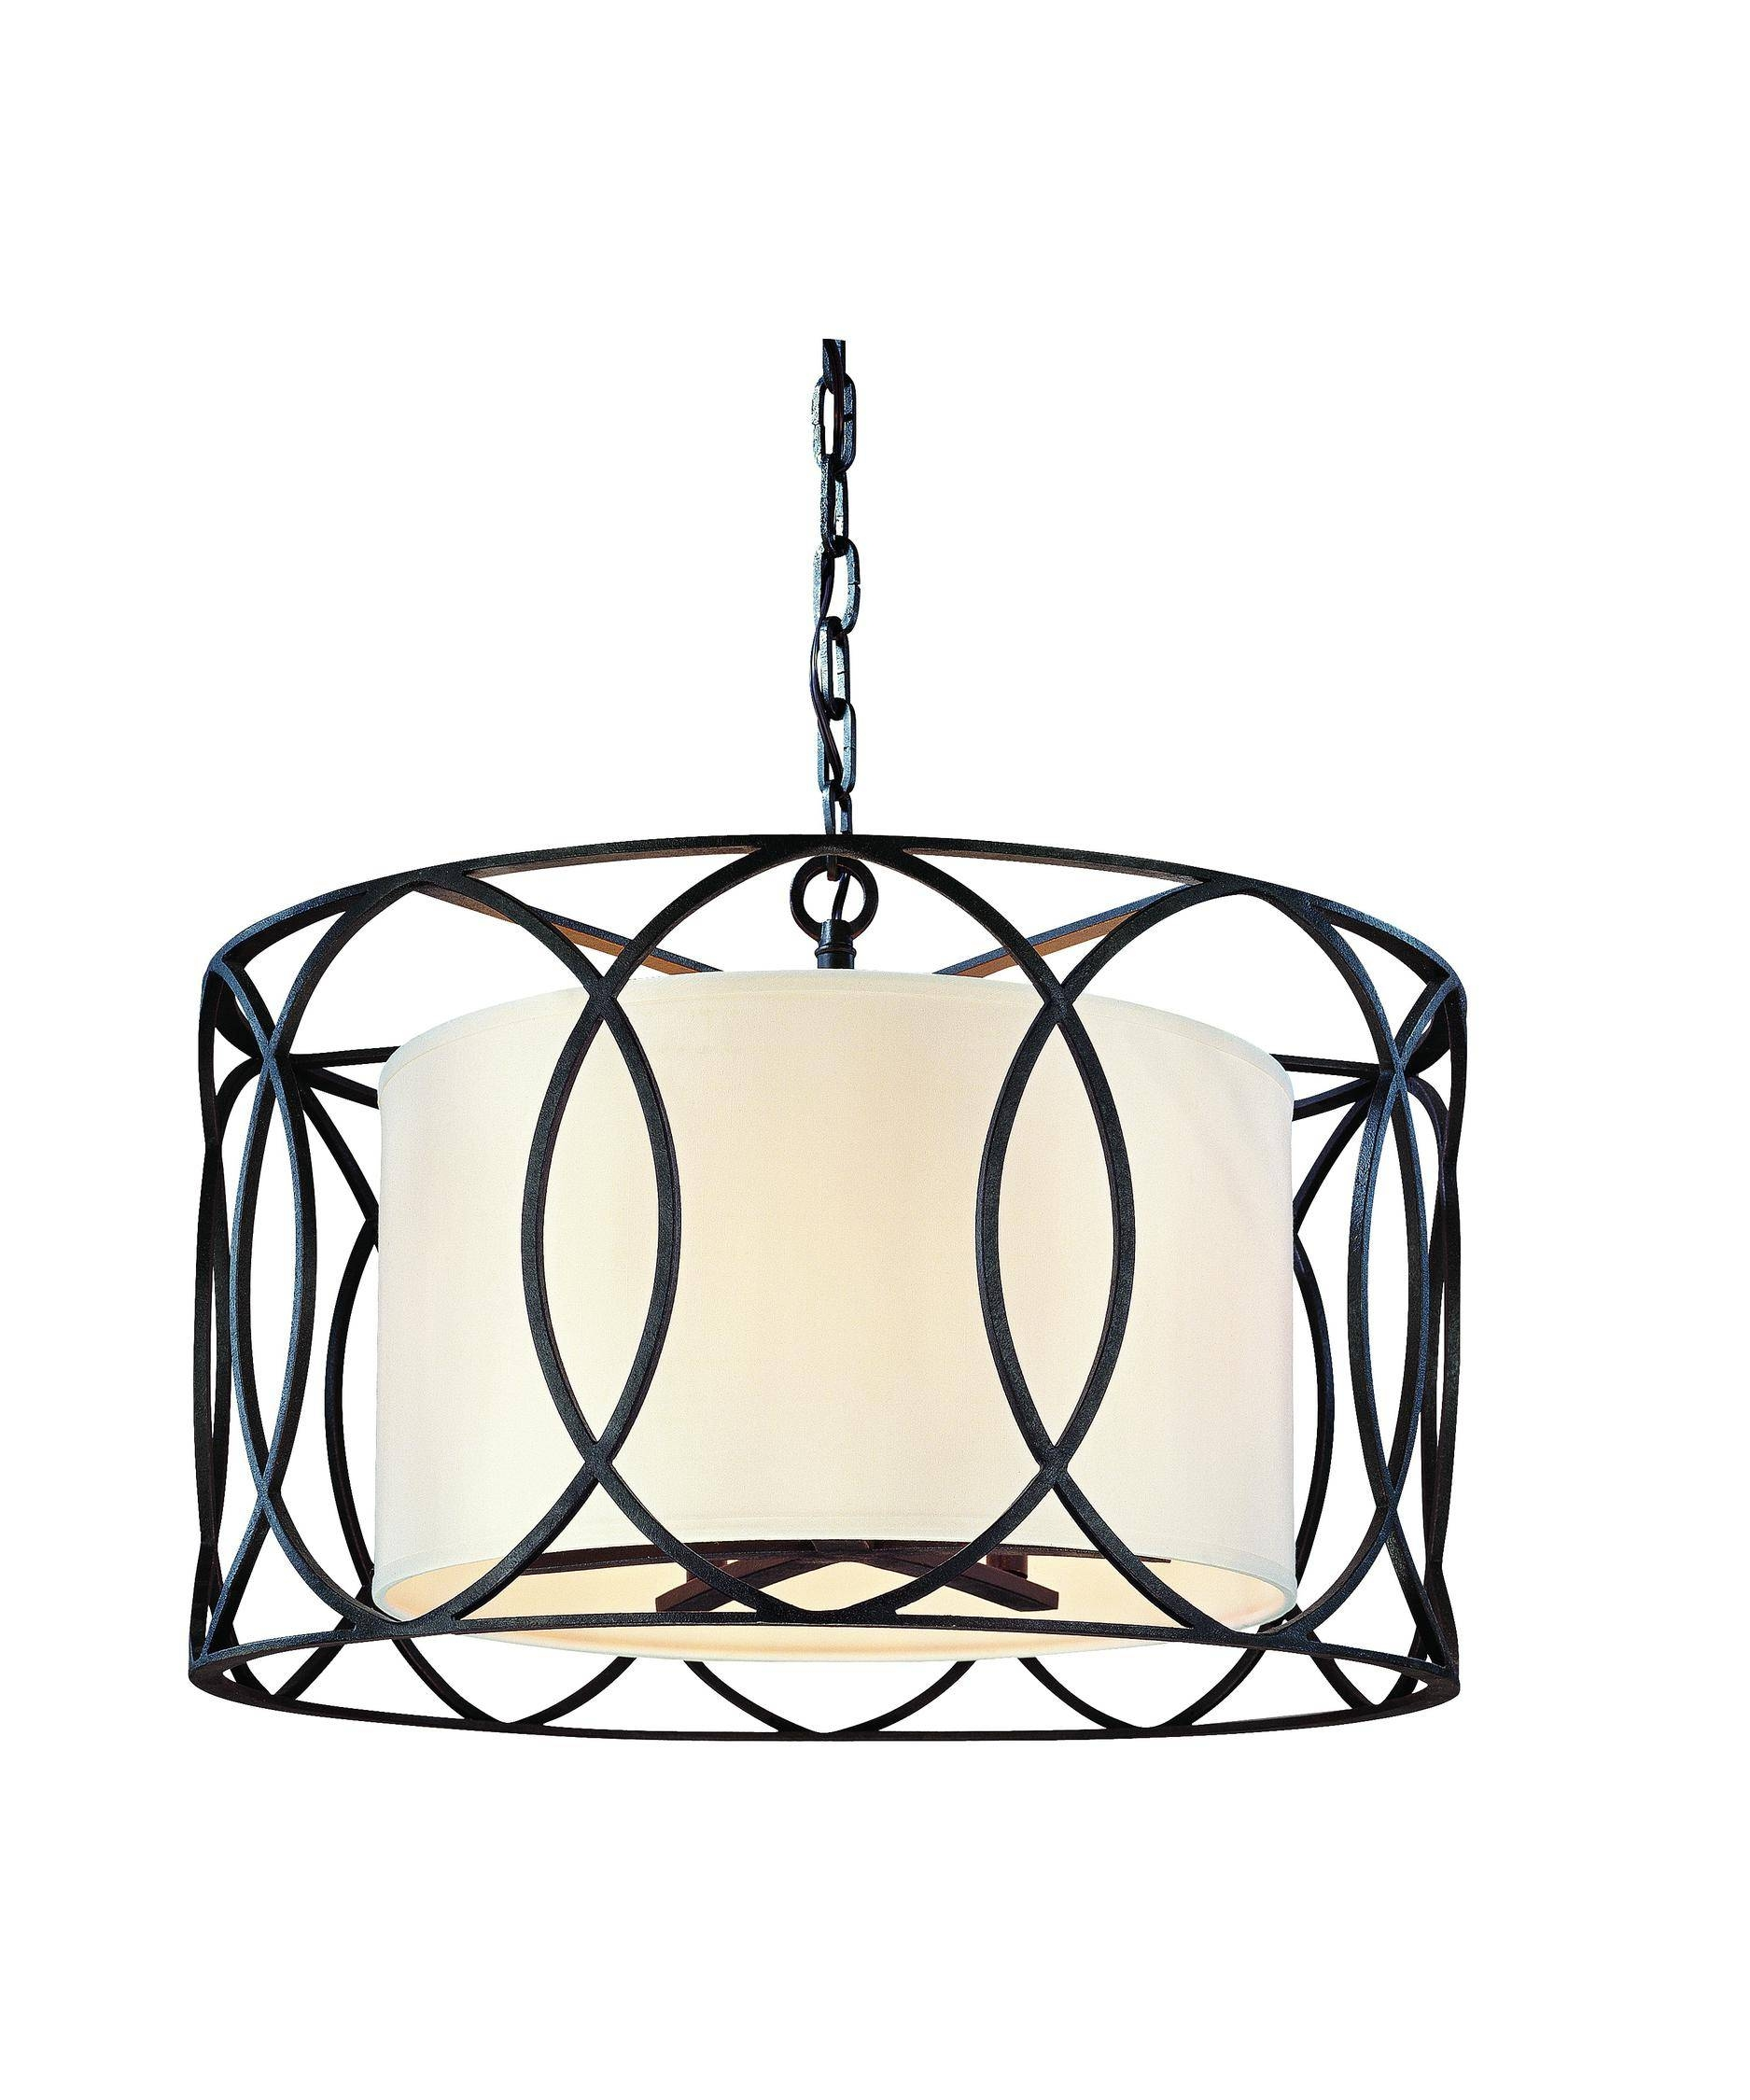 Troy Lighting F1285 Sausalito 25 Inch Wide 5 Light Large Pendant Throughout Troy Sausalito Pendants (View 2 of 15)